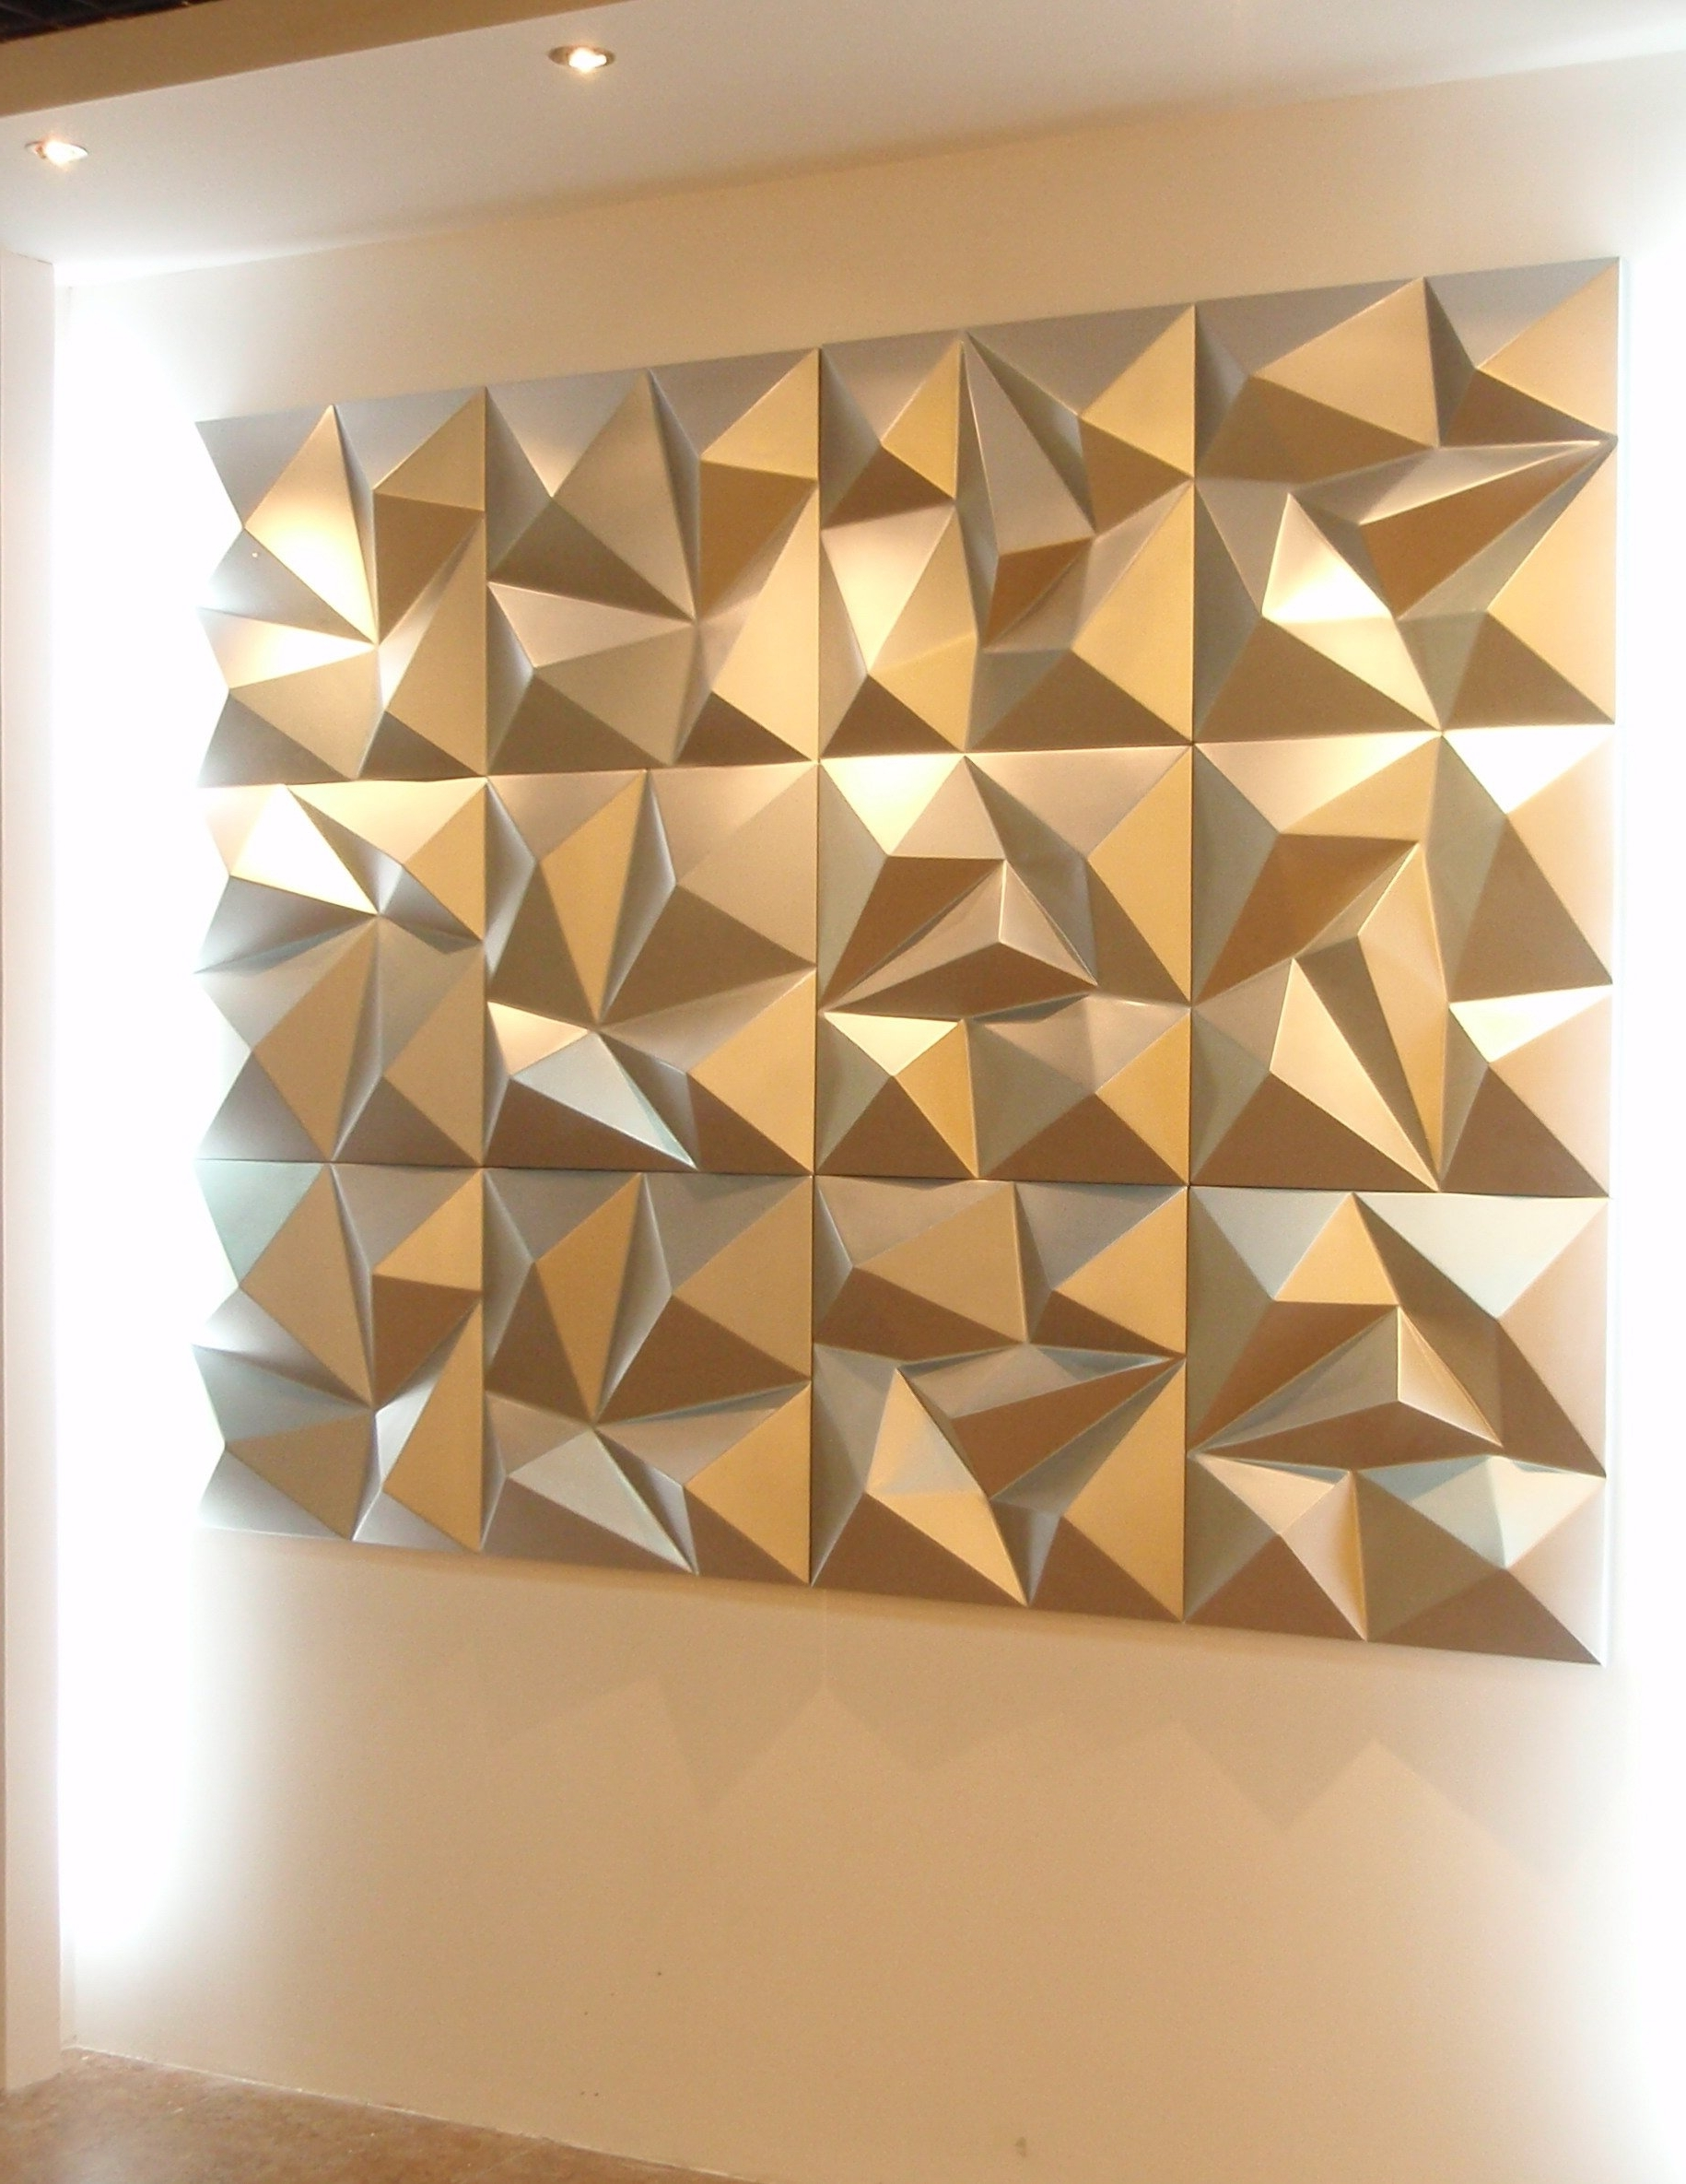 Recent Triwol 3d Interior Decorative Wall Panels Art Panel Glamorous Throughout Unique 3d Wall Art (View 7 of 15)